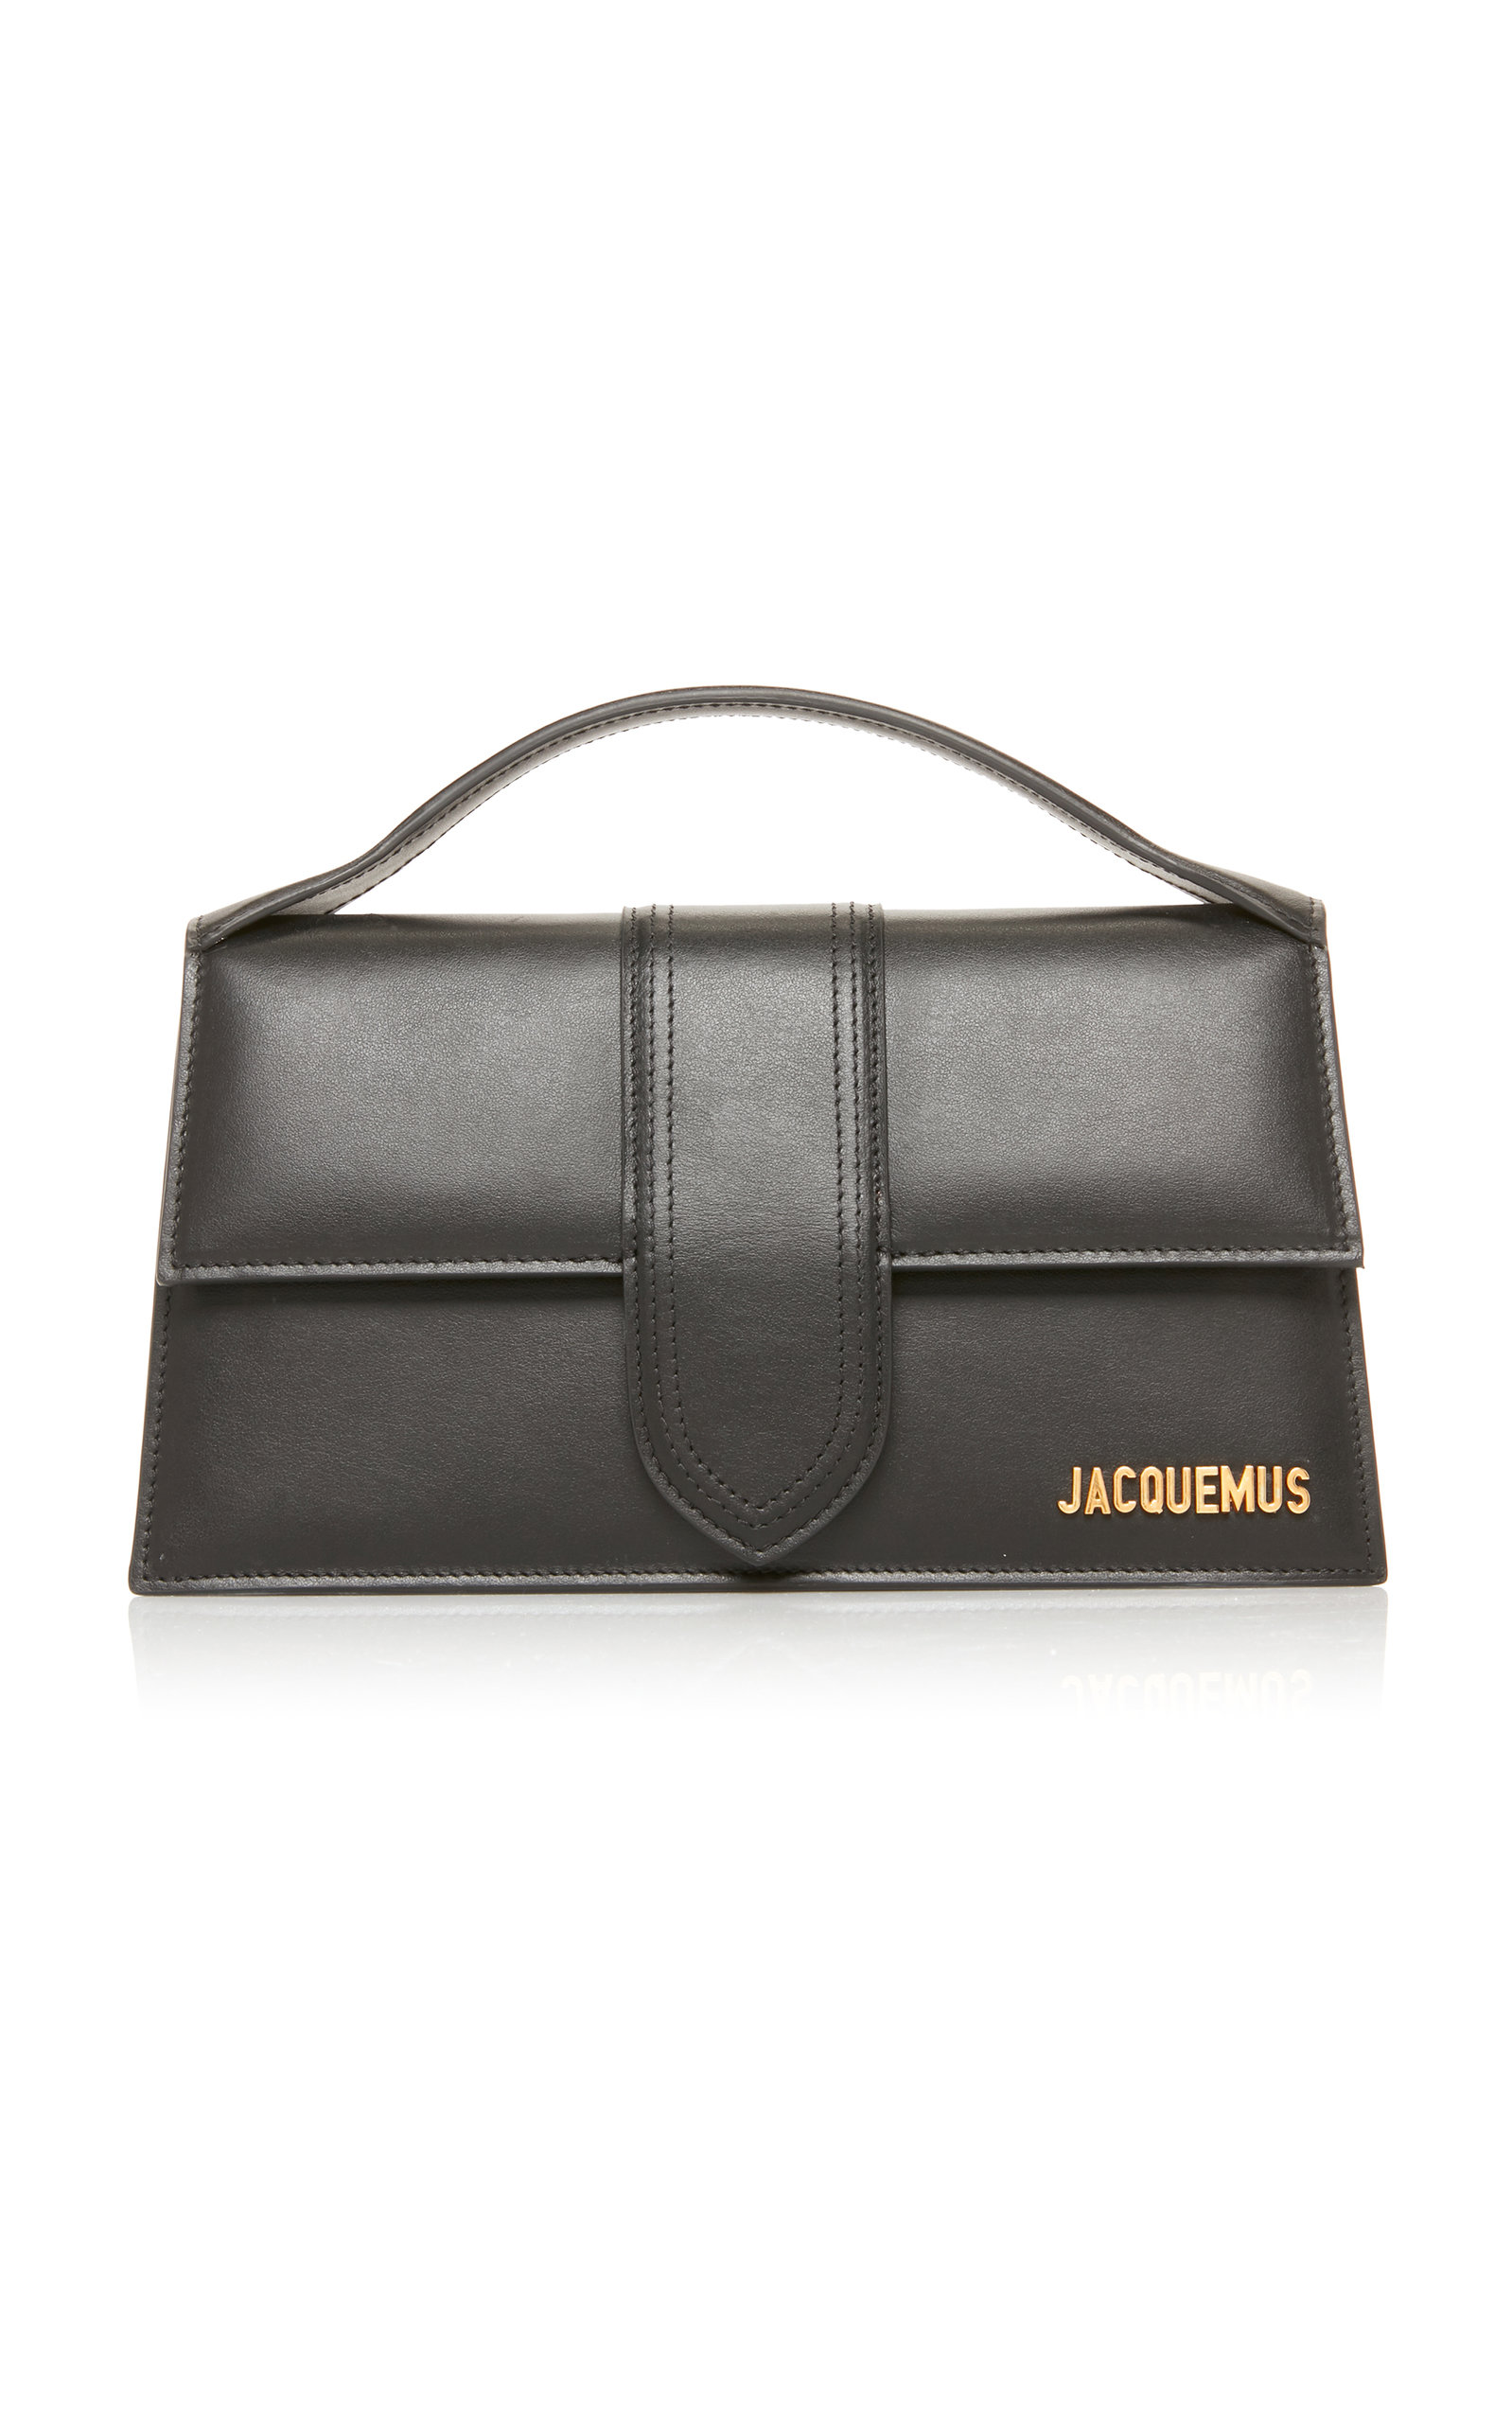 Jacquemus LE GRAND BAMBINO LEATHER TOP HANDLE BAG